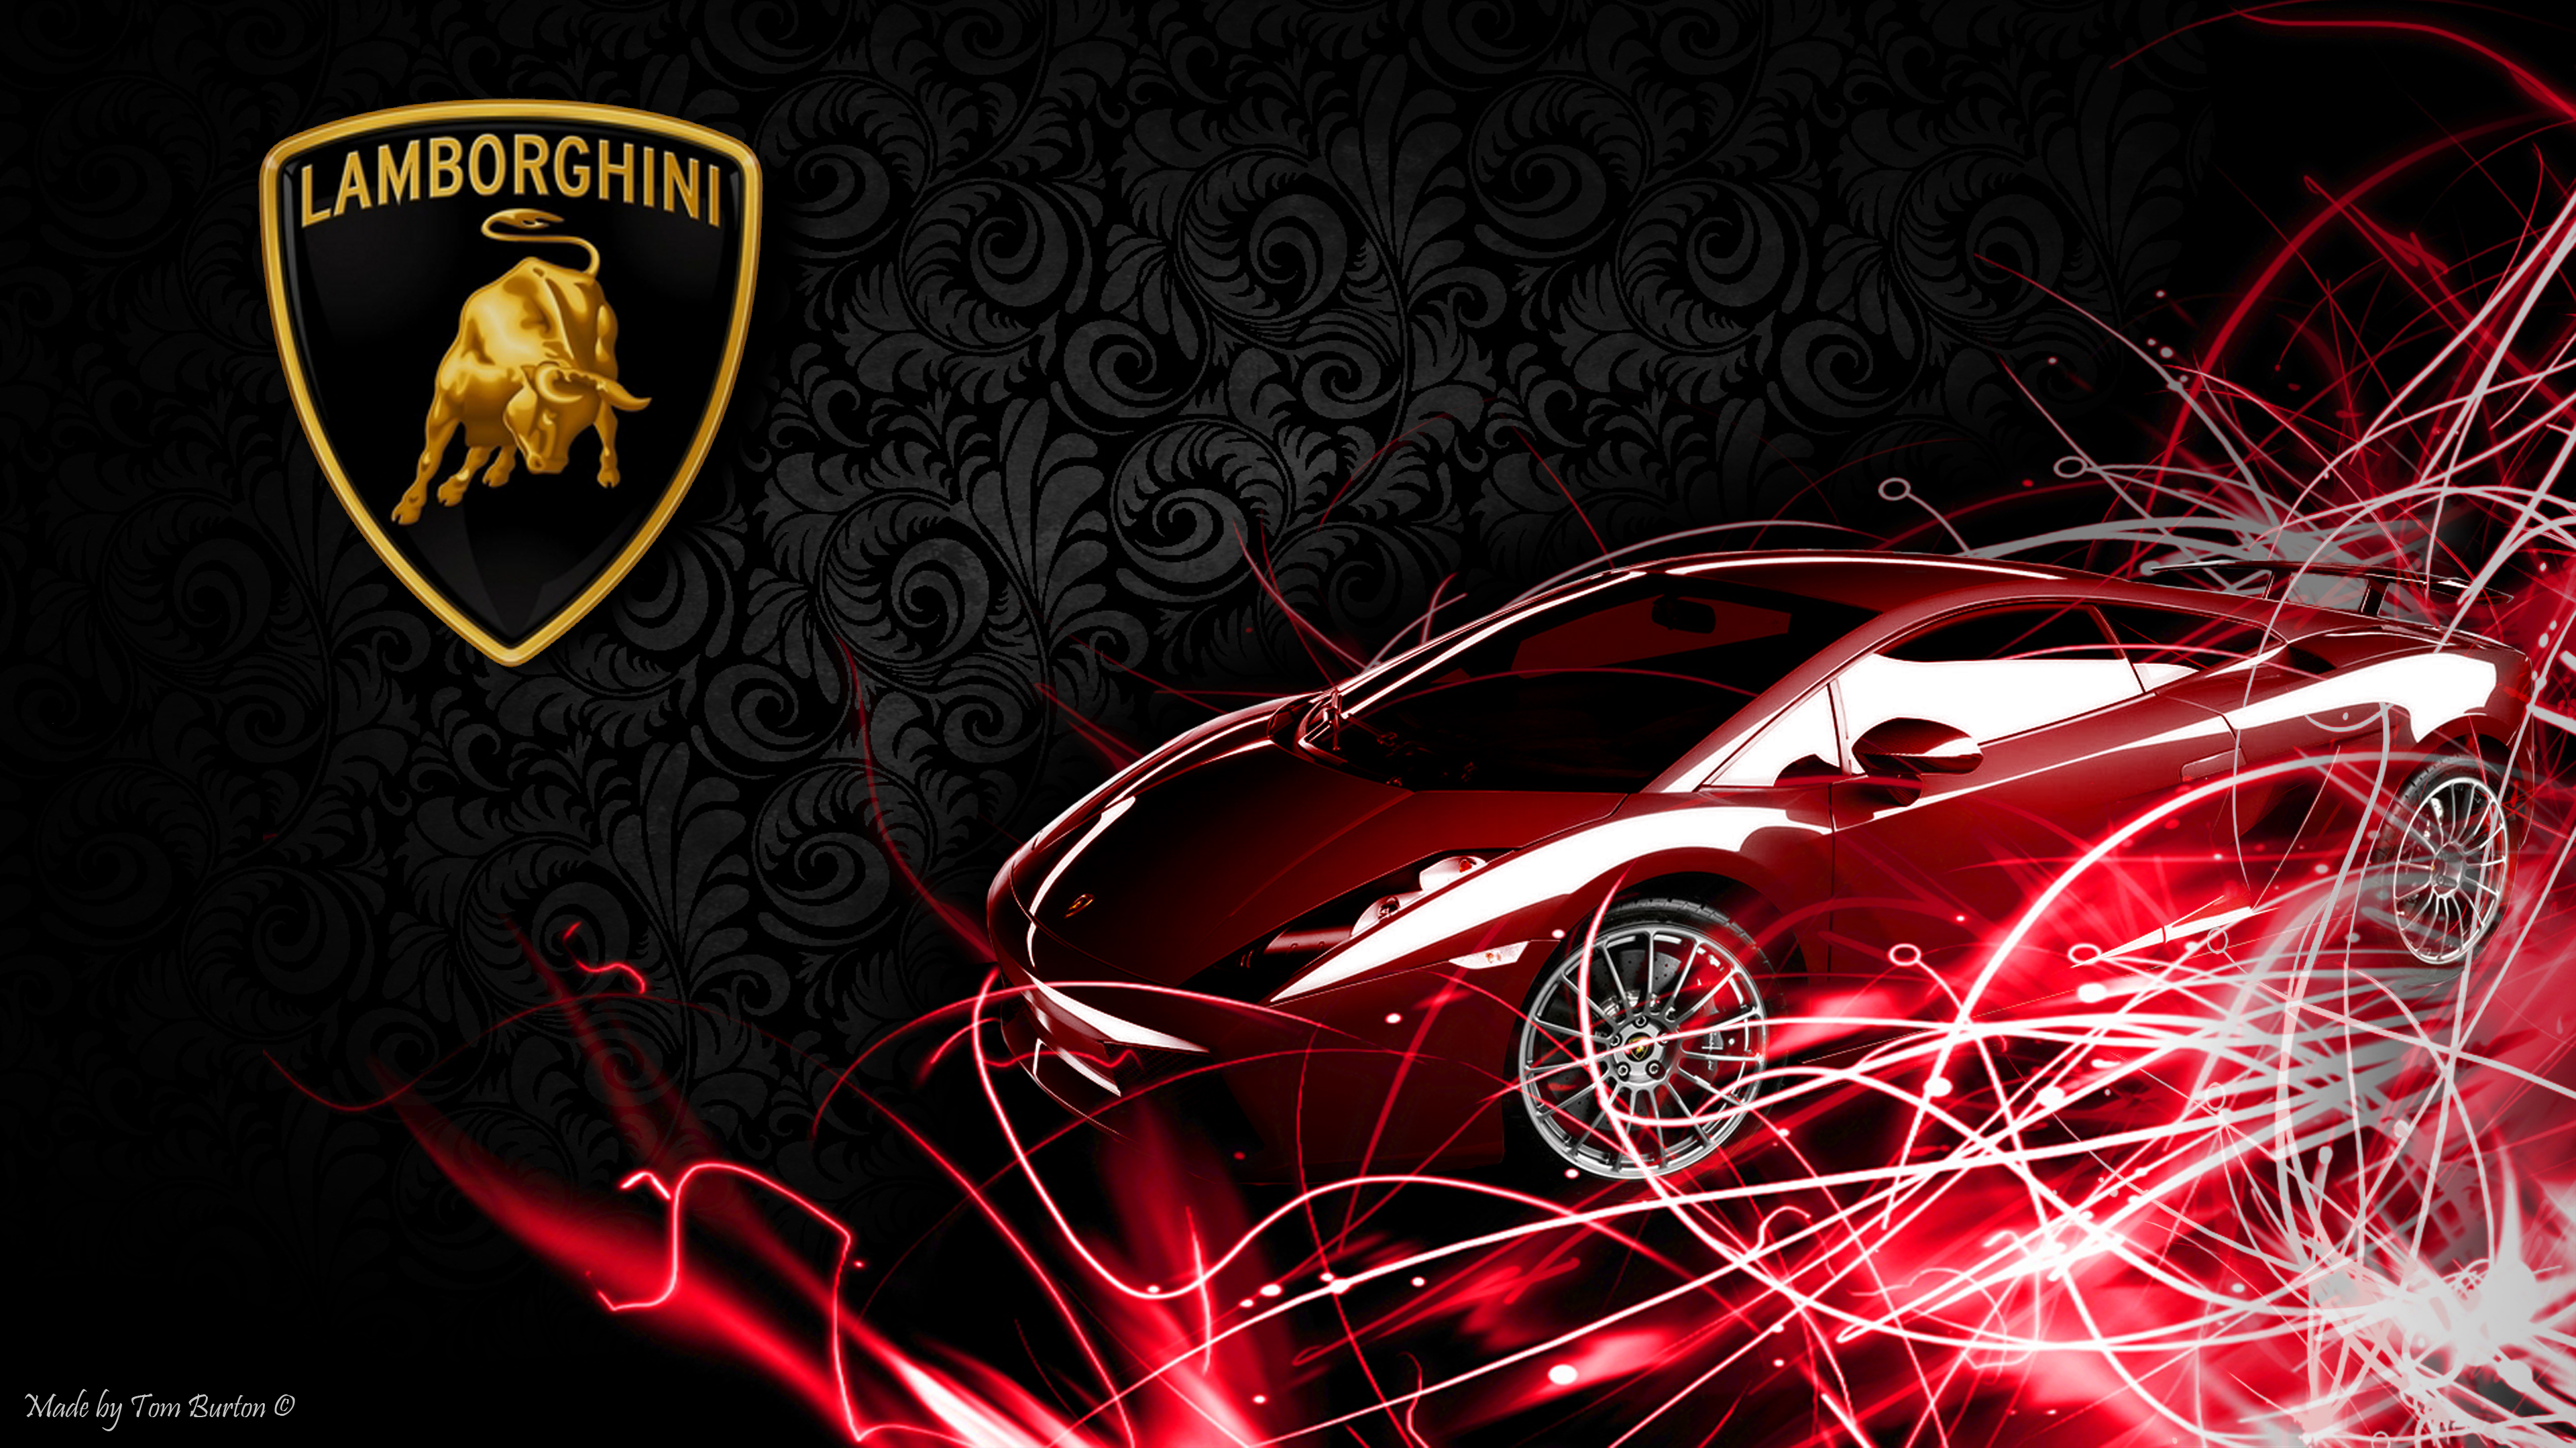 UPDATED! By Ramones112 Lamborghini Gallardo Wallpaper !UPDATED! By  Ramones112